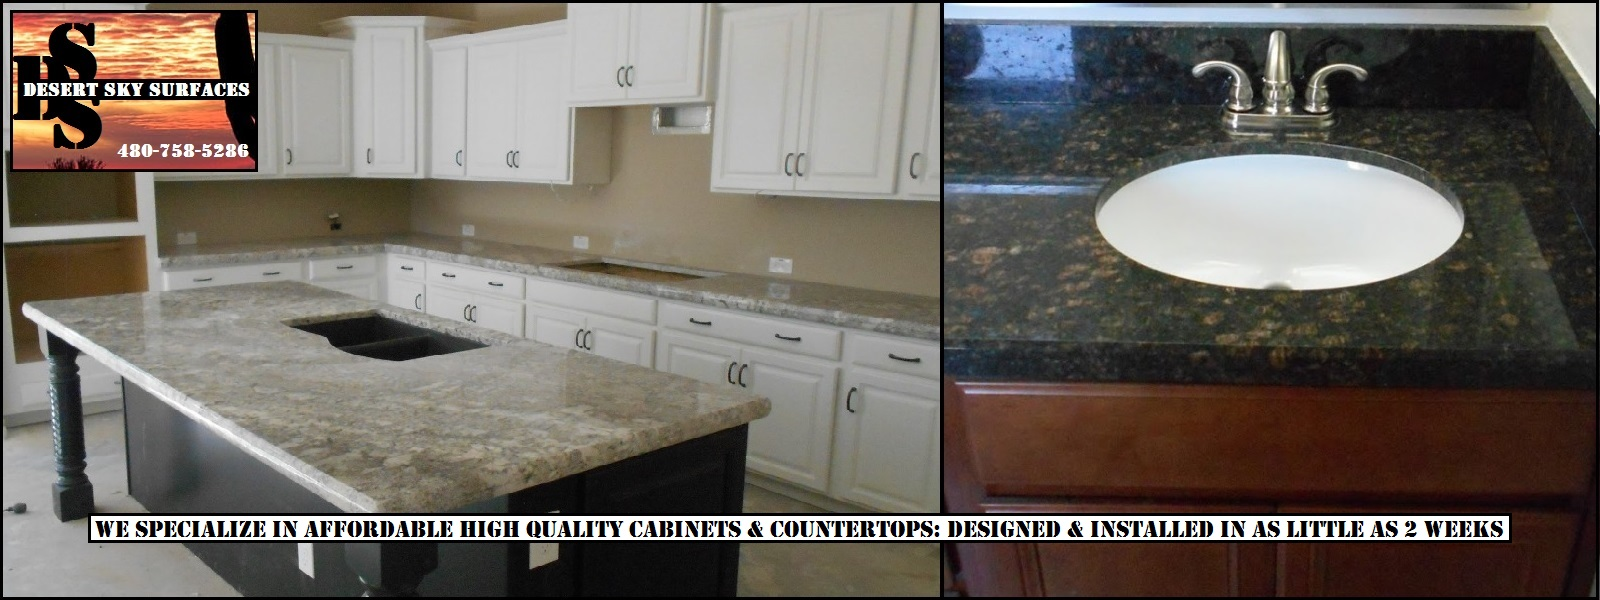 dsscabinetscountertops affordable kitchen countertops Kitchen Bath Countertops Granite Quartz more